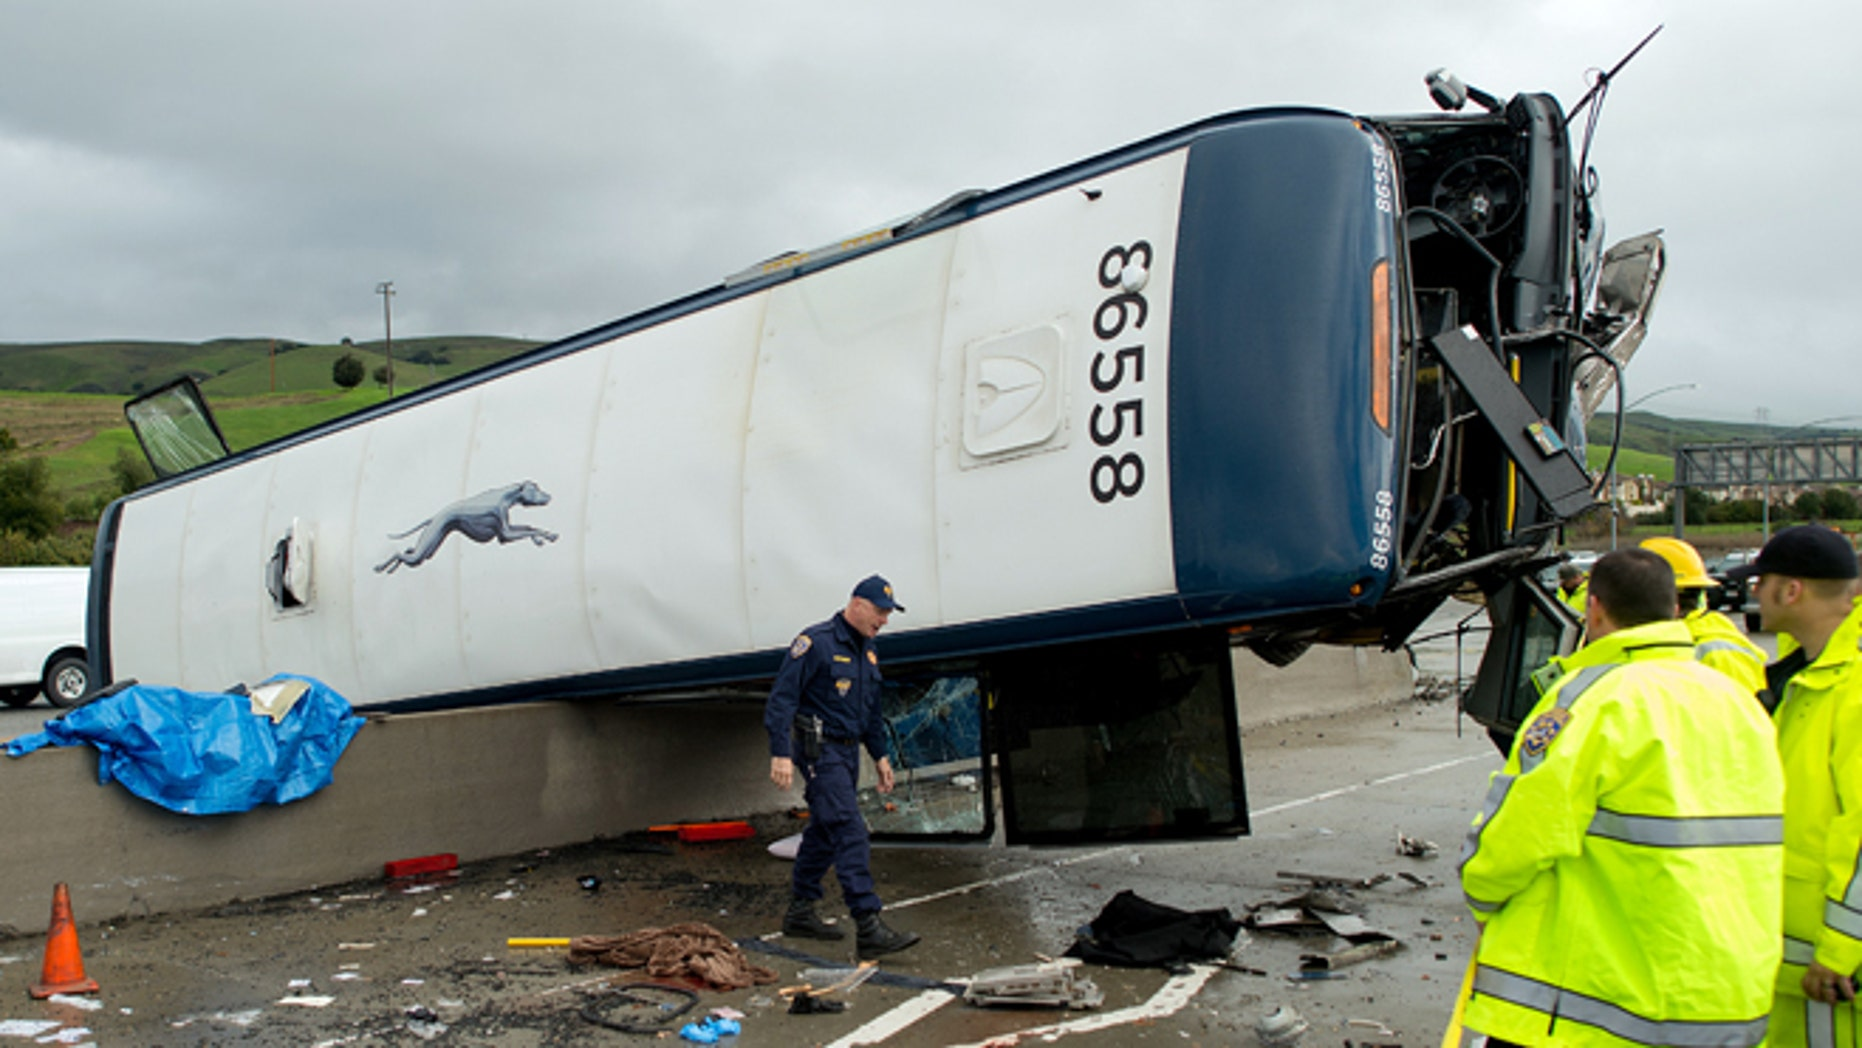 A California Highway Patrol investigator examines the scene of a fatal Greyhound bus crash, Tuesday, Jan. 19, 2016, in San Jose, Calif. The bus flipped on its side while traveling north on Highway 101, according to the San Jose Fire Department. (AP Photo/Noah Berger)